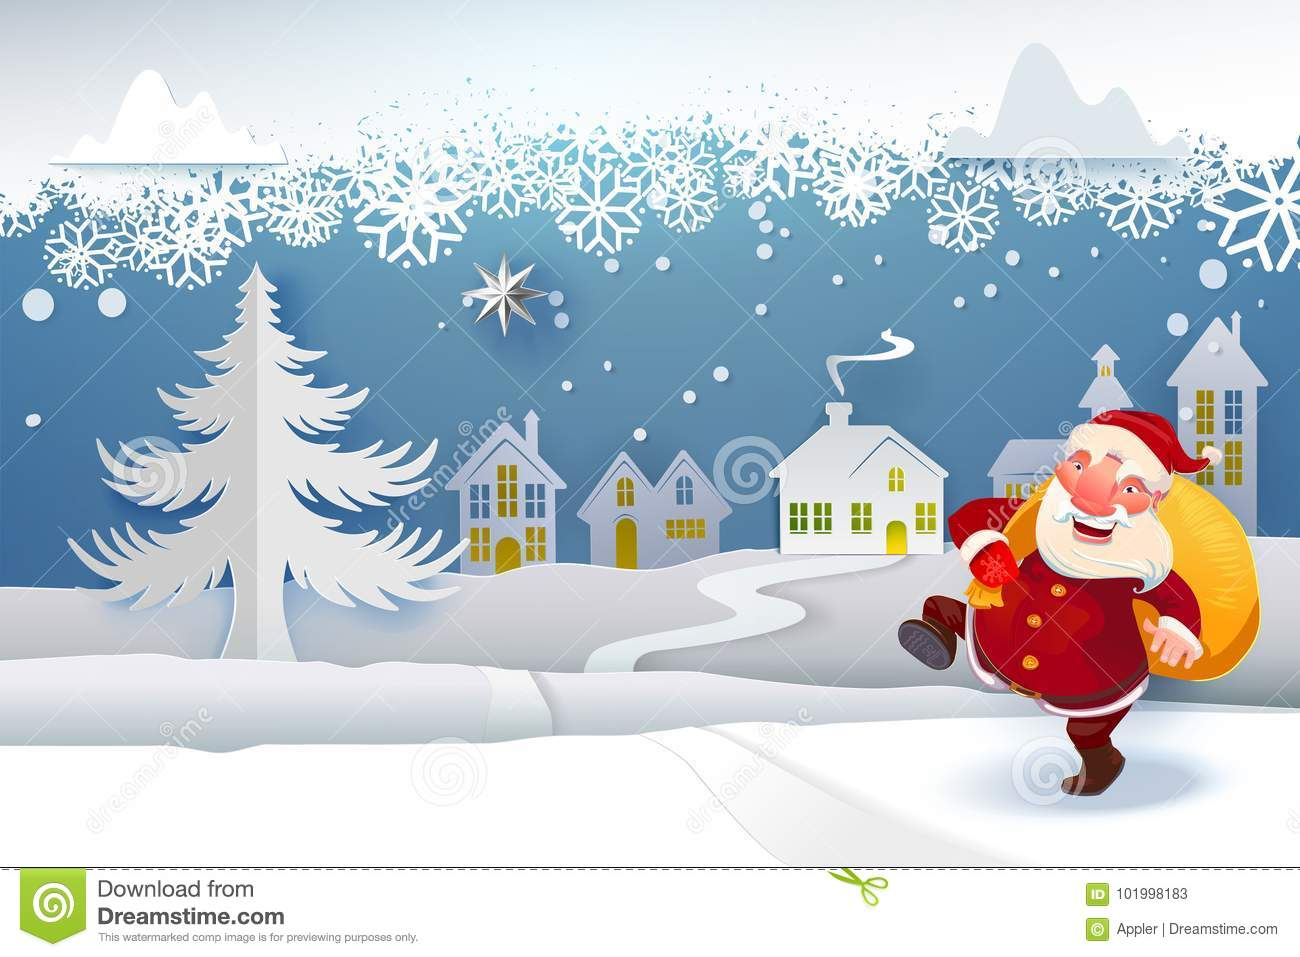 Santa with gifts going under snow